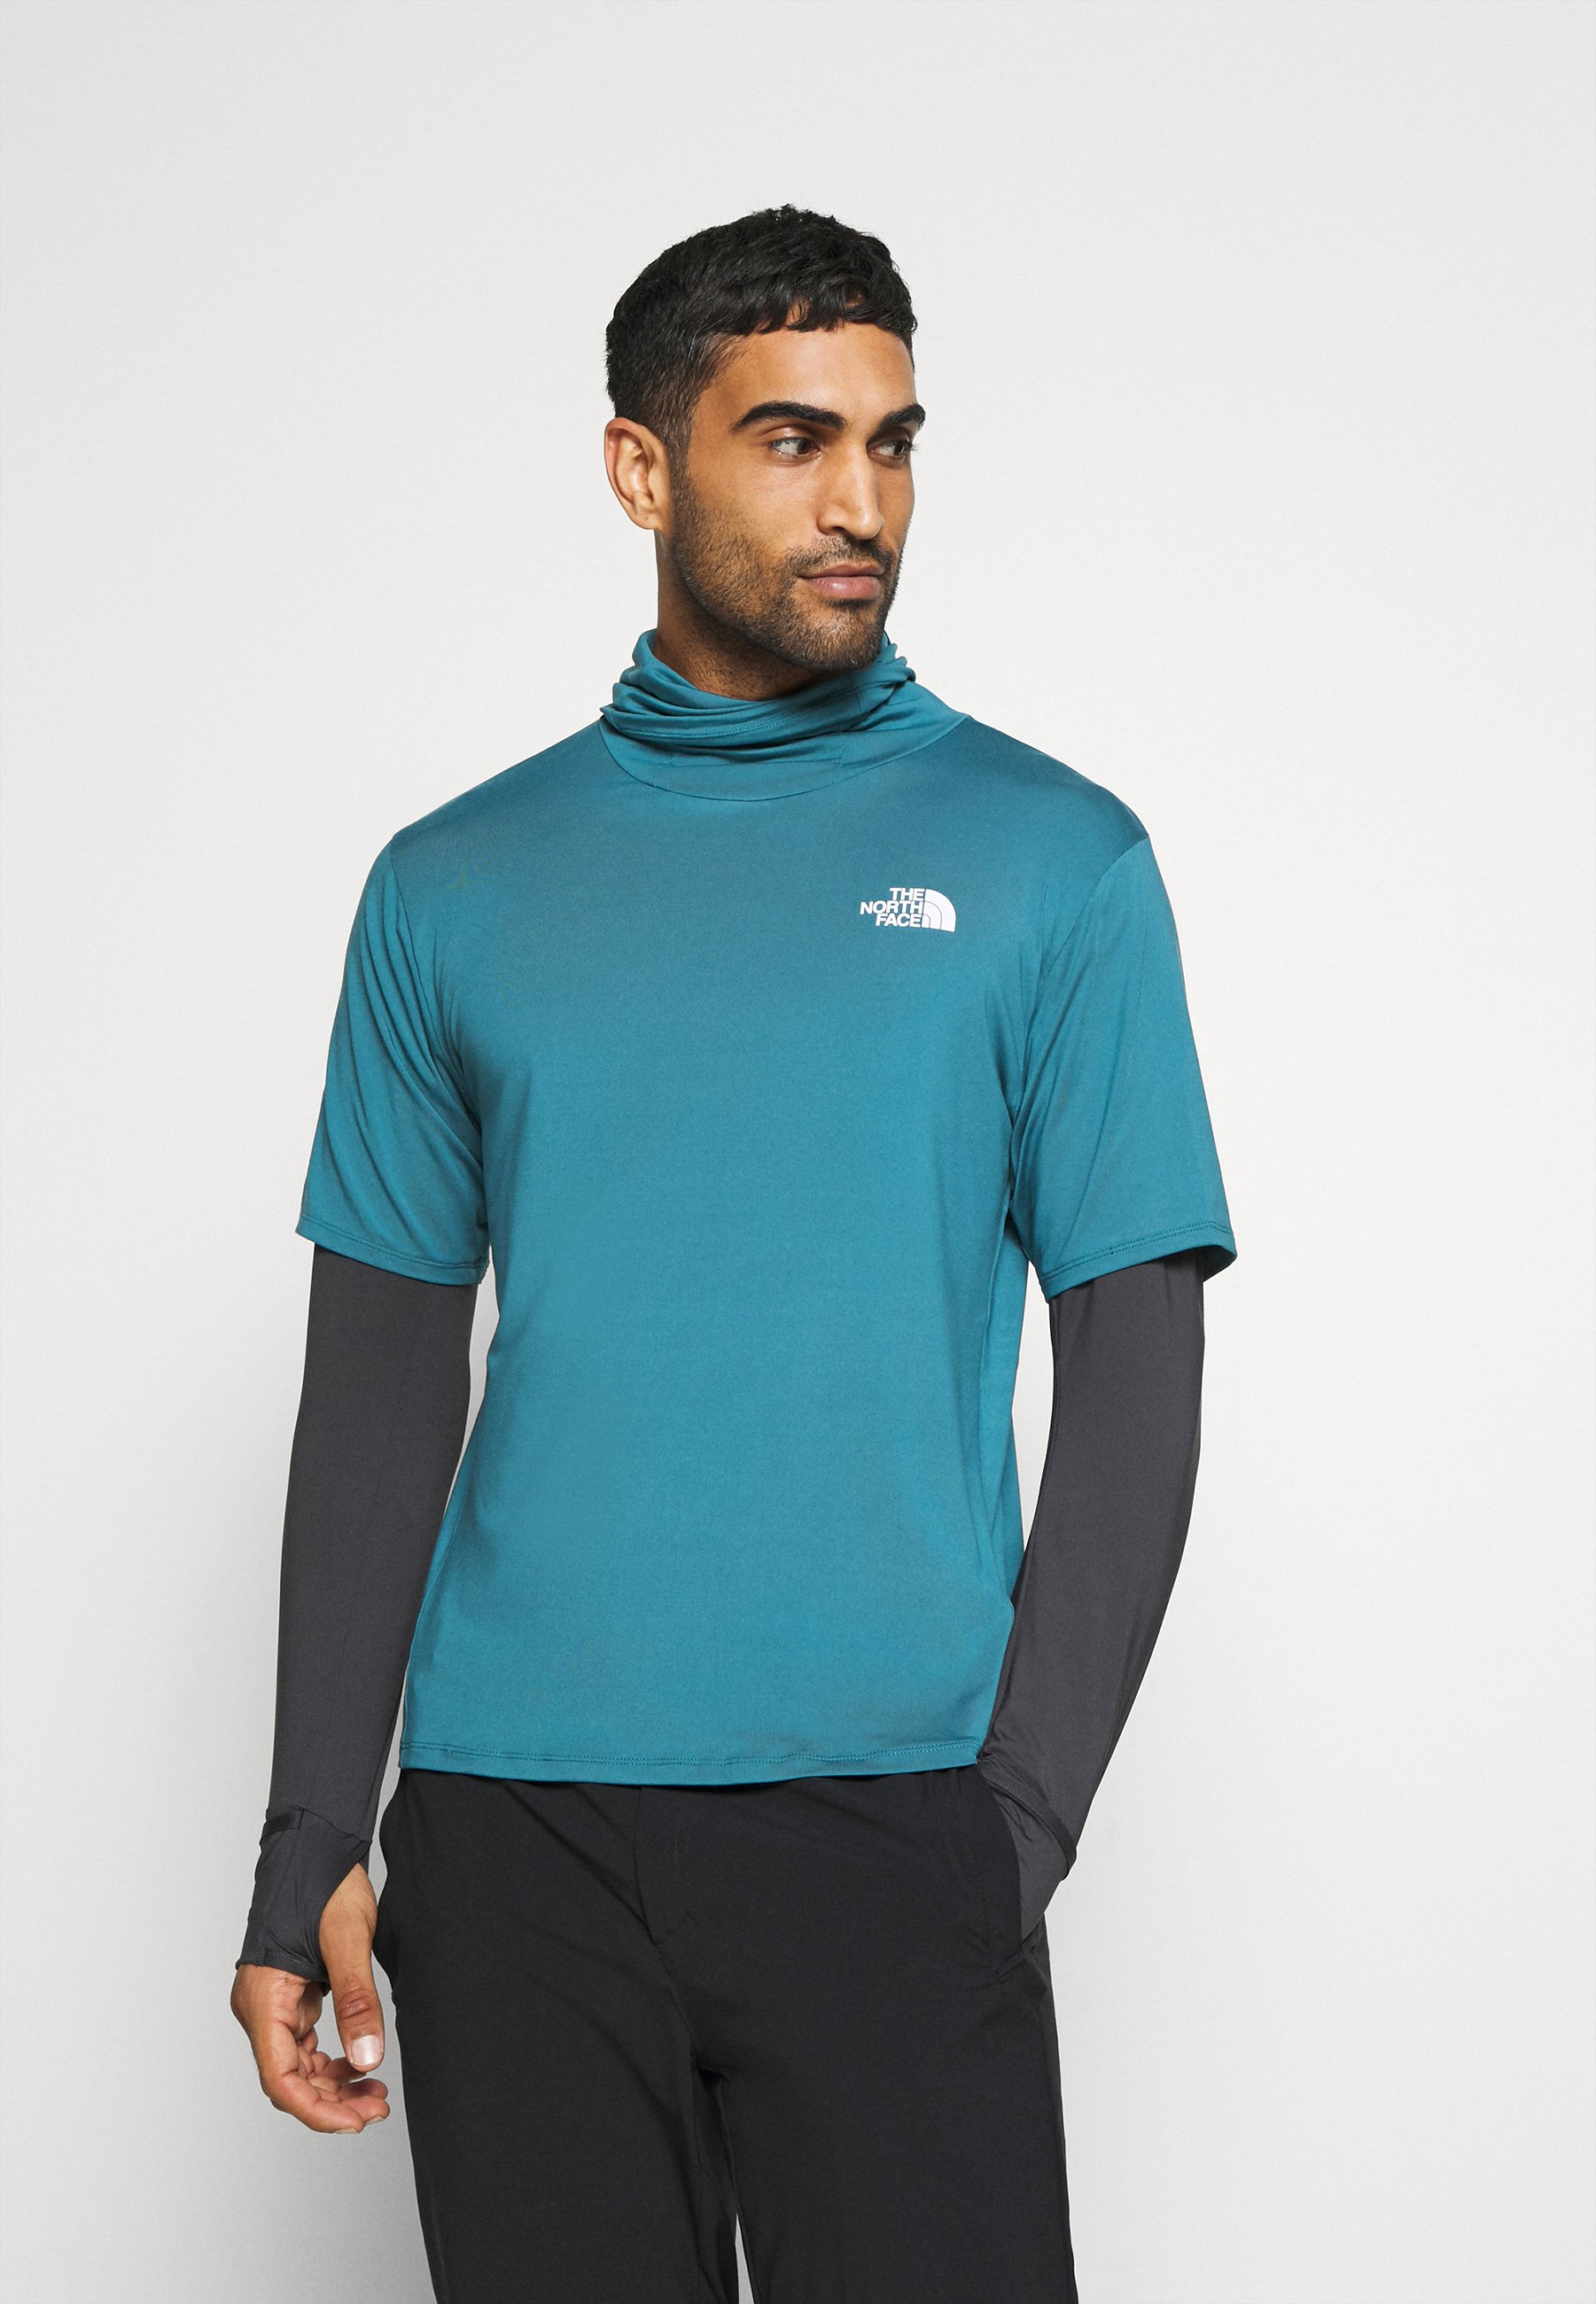 The North Face Active Trail Storm Balaclava Camiseta De Manga Larga Mallard Blue Asphalt Grey Azul Zalando Es